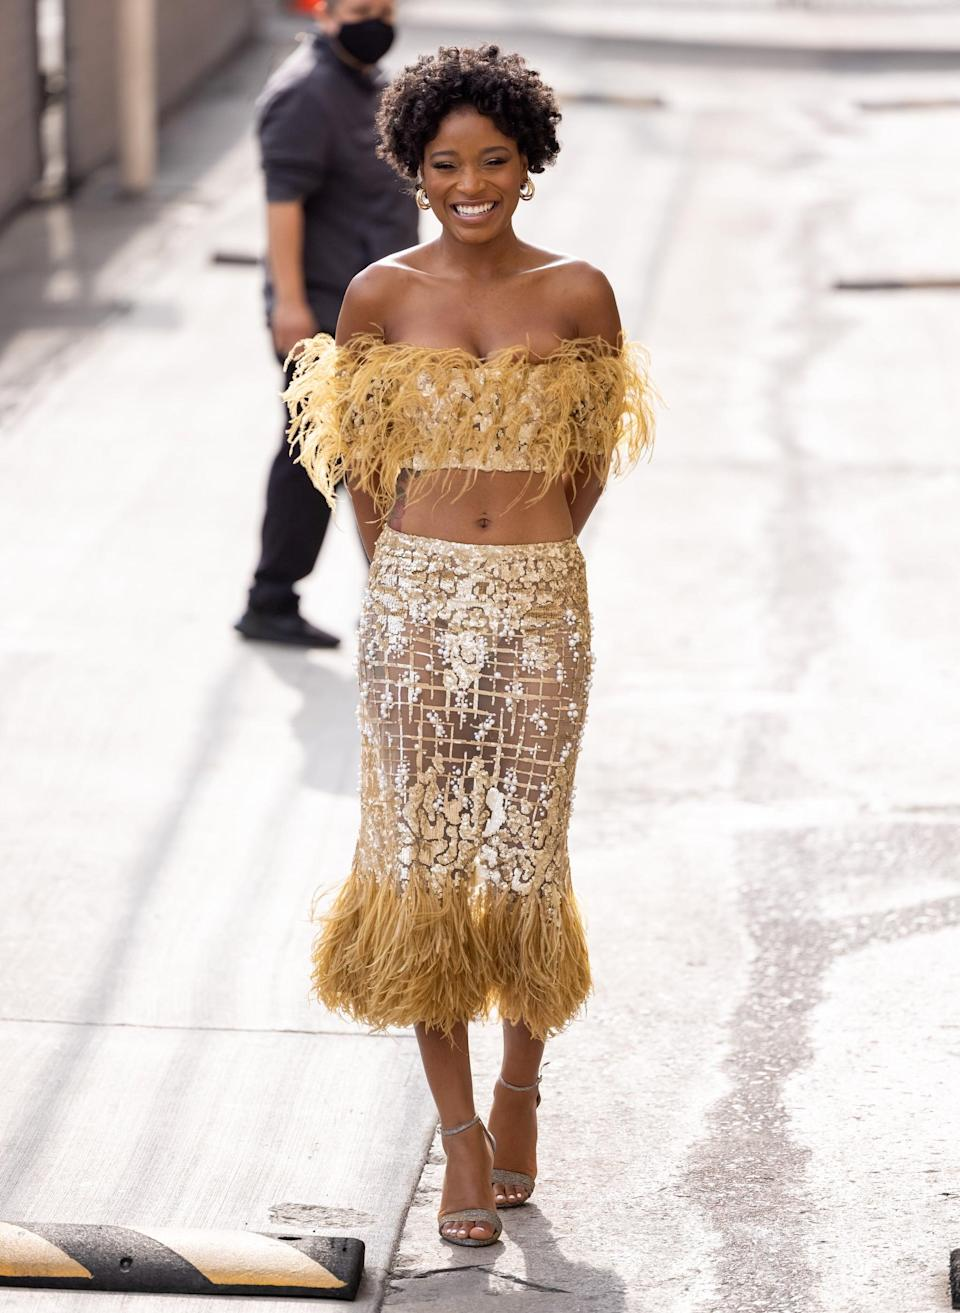 """<p>The actress took our breath away in <a href=""""https://www.popsugar.com/fashion/keke-palmer-jimmy-kimmel-feather-skirt-set-48468773"""" class=""""link rapid-noclick-resp"""" rel=""""nofollow noopener"""" target=""""_blank"""" data-ylk=""""slk:this feathered, sparkly Georges Chakra Couture look"""">this feathered, sparkly Georges Chakra Couture look</a>. </p>"""